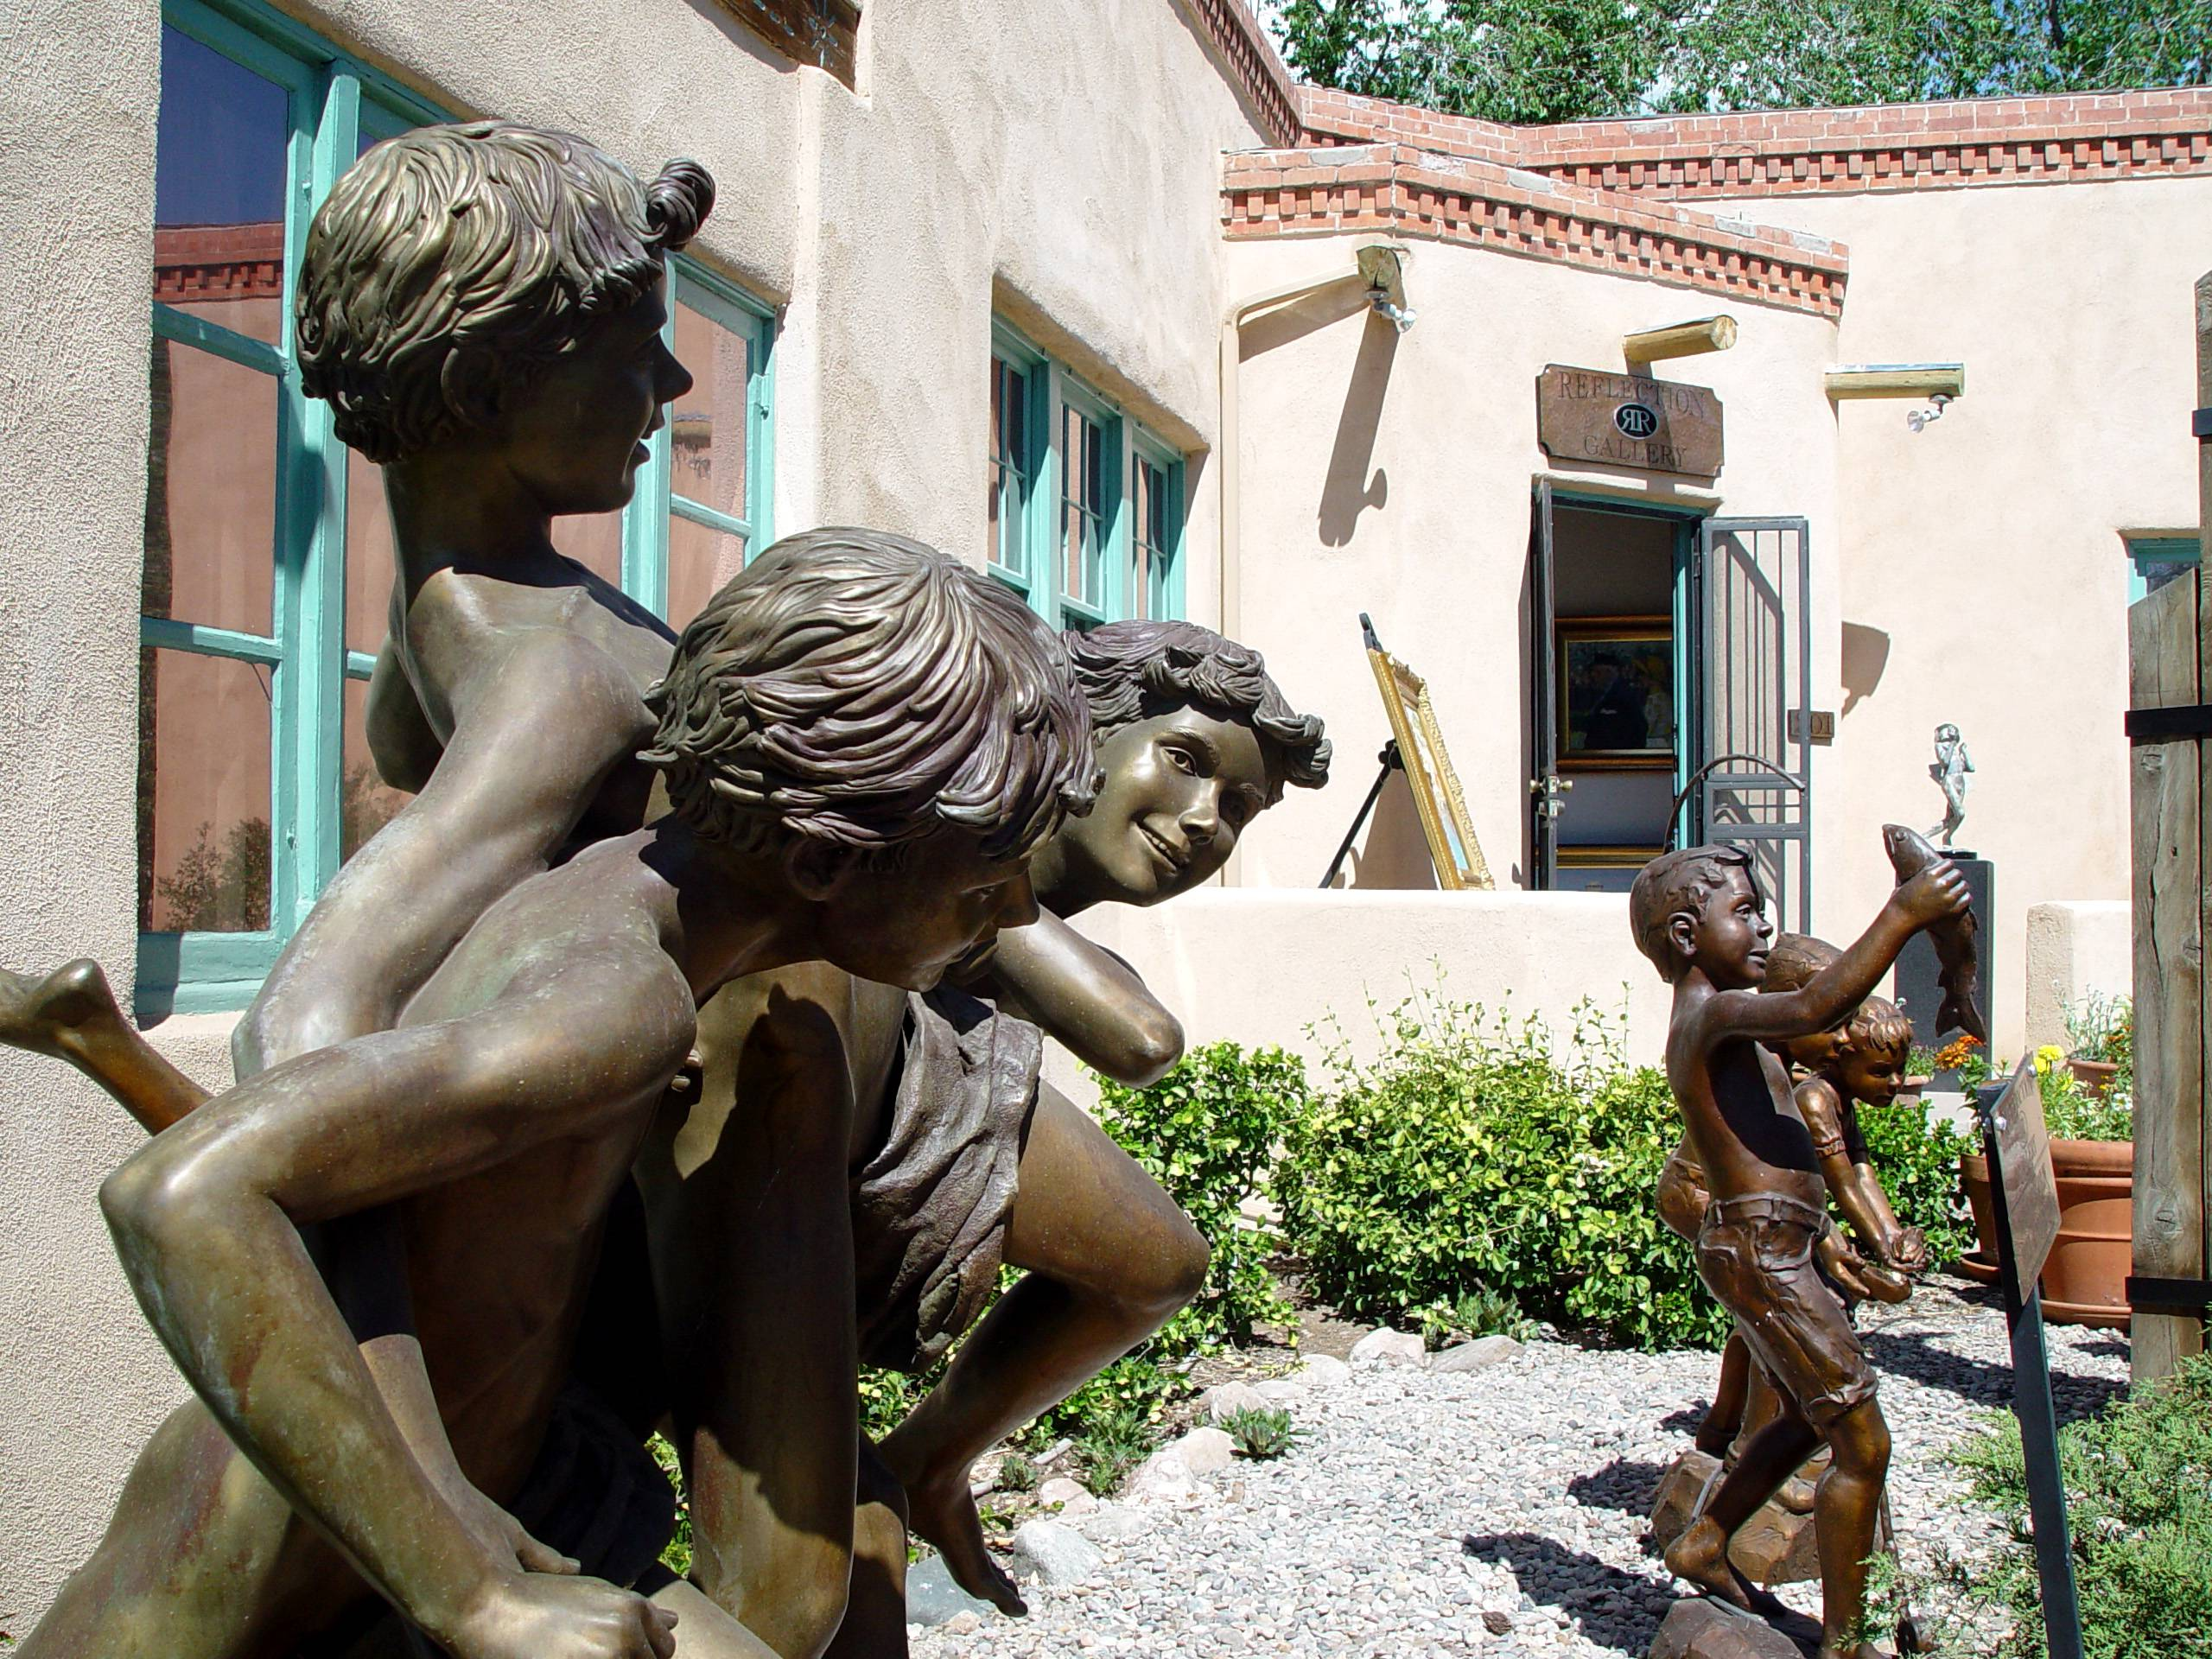 Santa Fe's Canyon Road is home to more than 100 fine art galleries and studios that welcome visitors for free. The galleries feature everything from antiques to traditional Hispanic and Native art and international folk art.